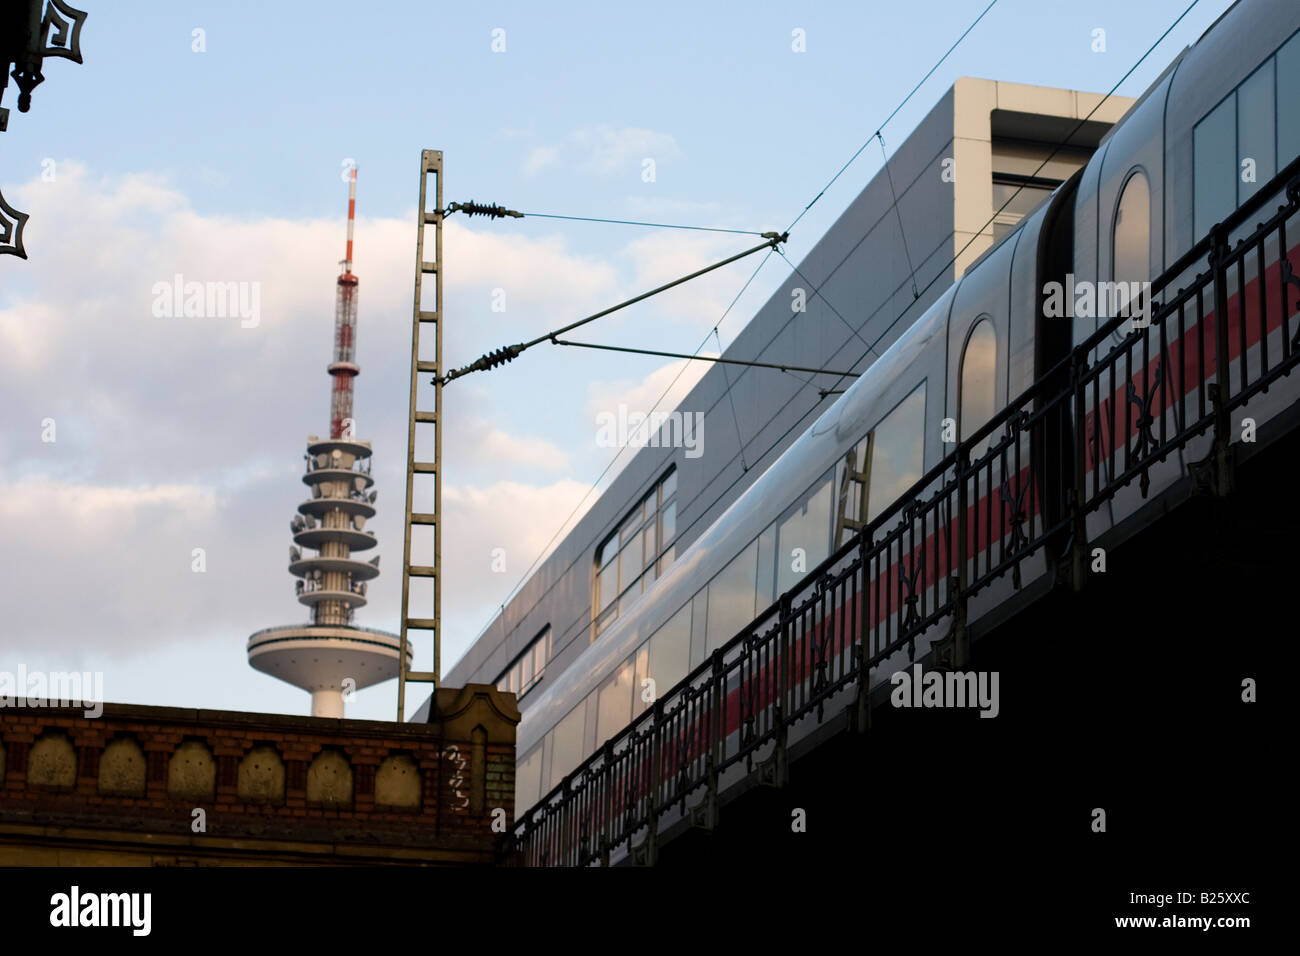 Sternschanze Station in Hamburg, Germany - Stock Image